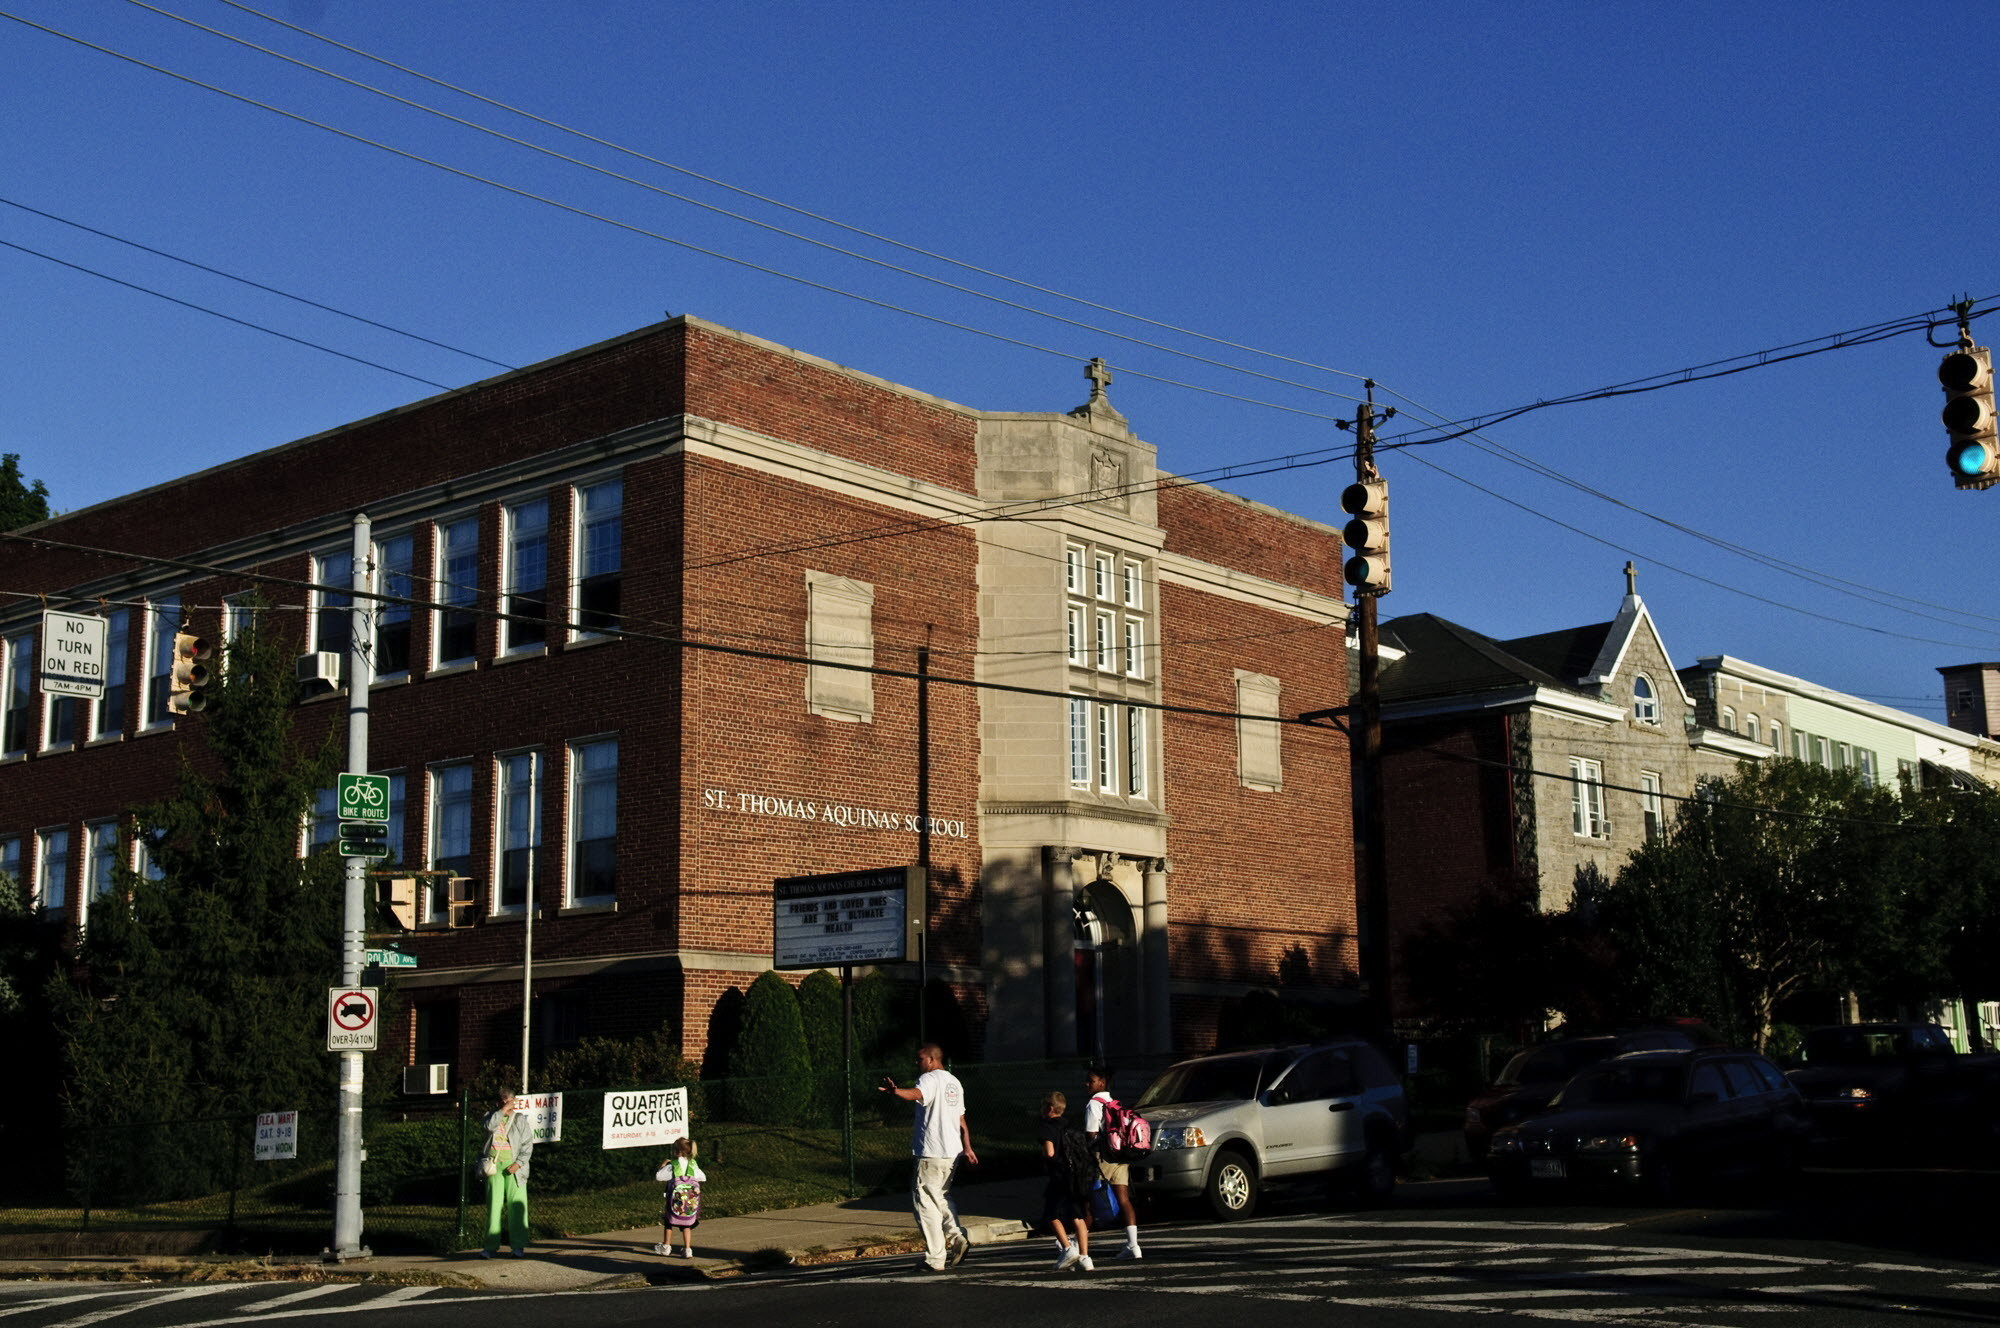 catholic singles in north baltimore Holy family catholic church is a popular tourist destination in north baltimore explore holy family catholic church tours to book online, find entry tickets price and timings, opening hours, address, nearby attractions and more.